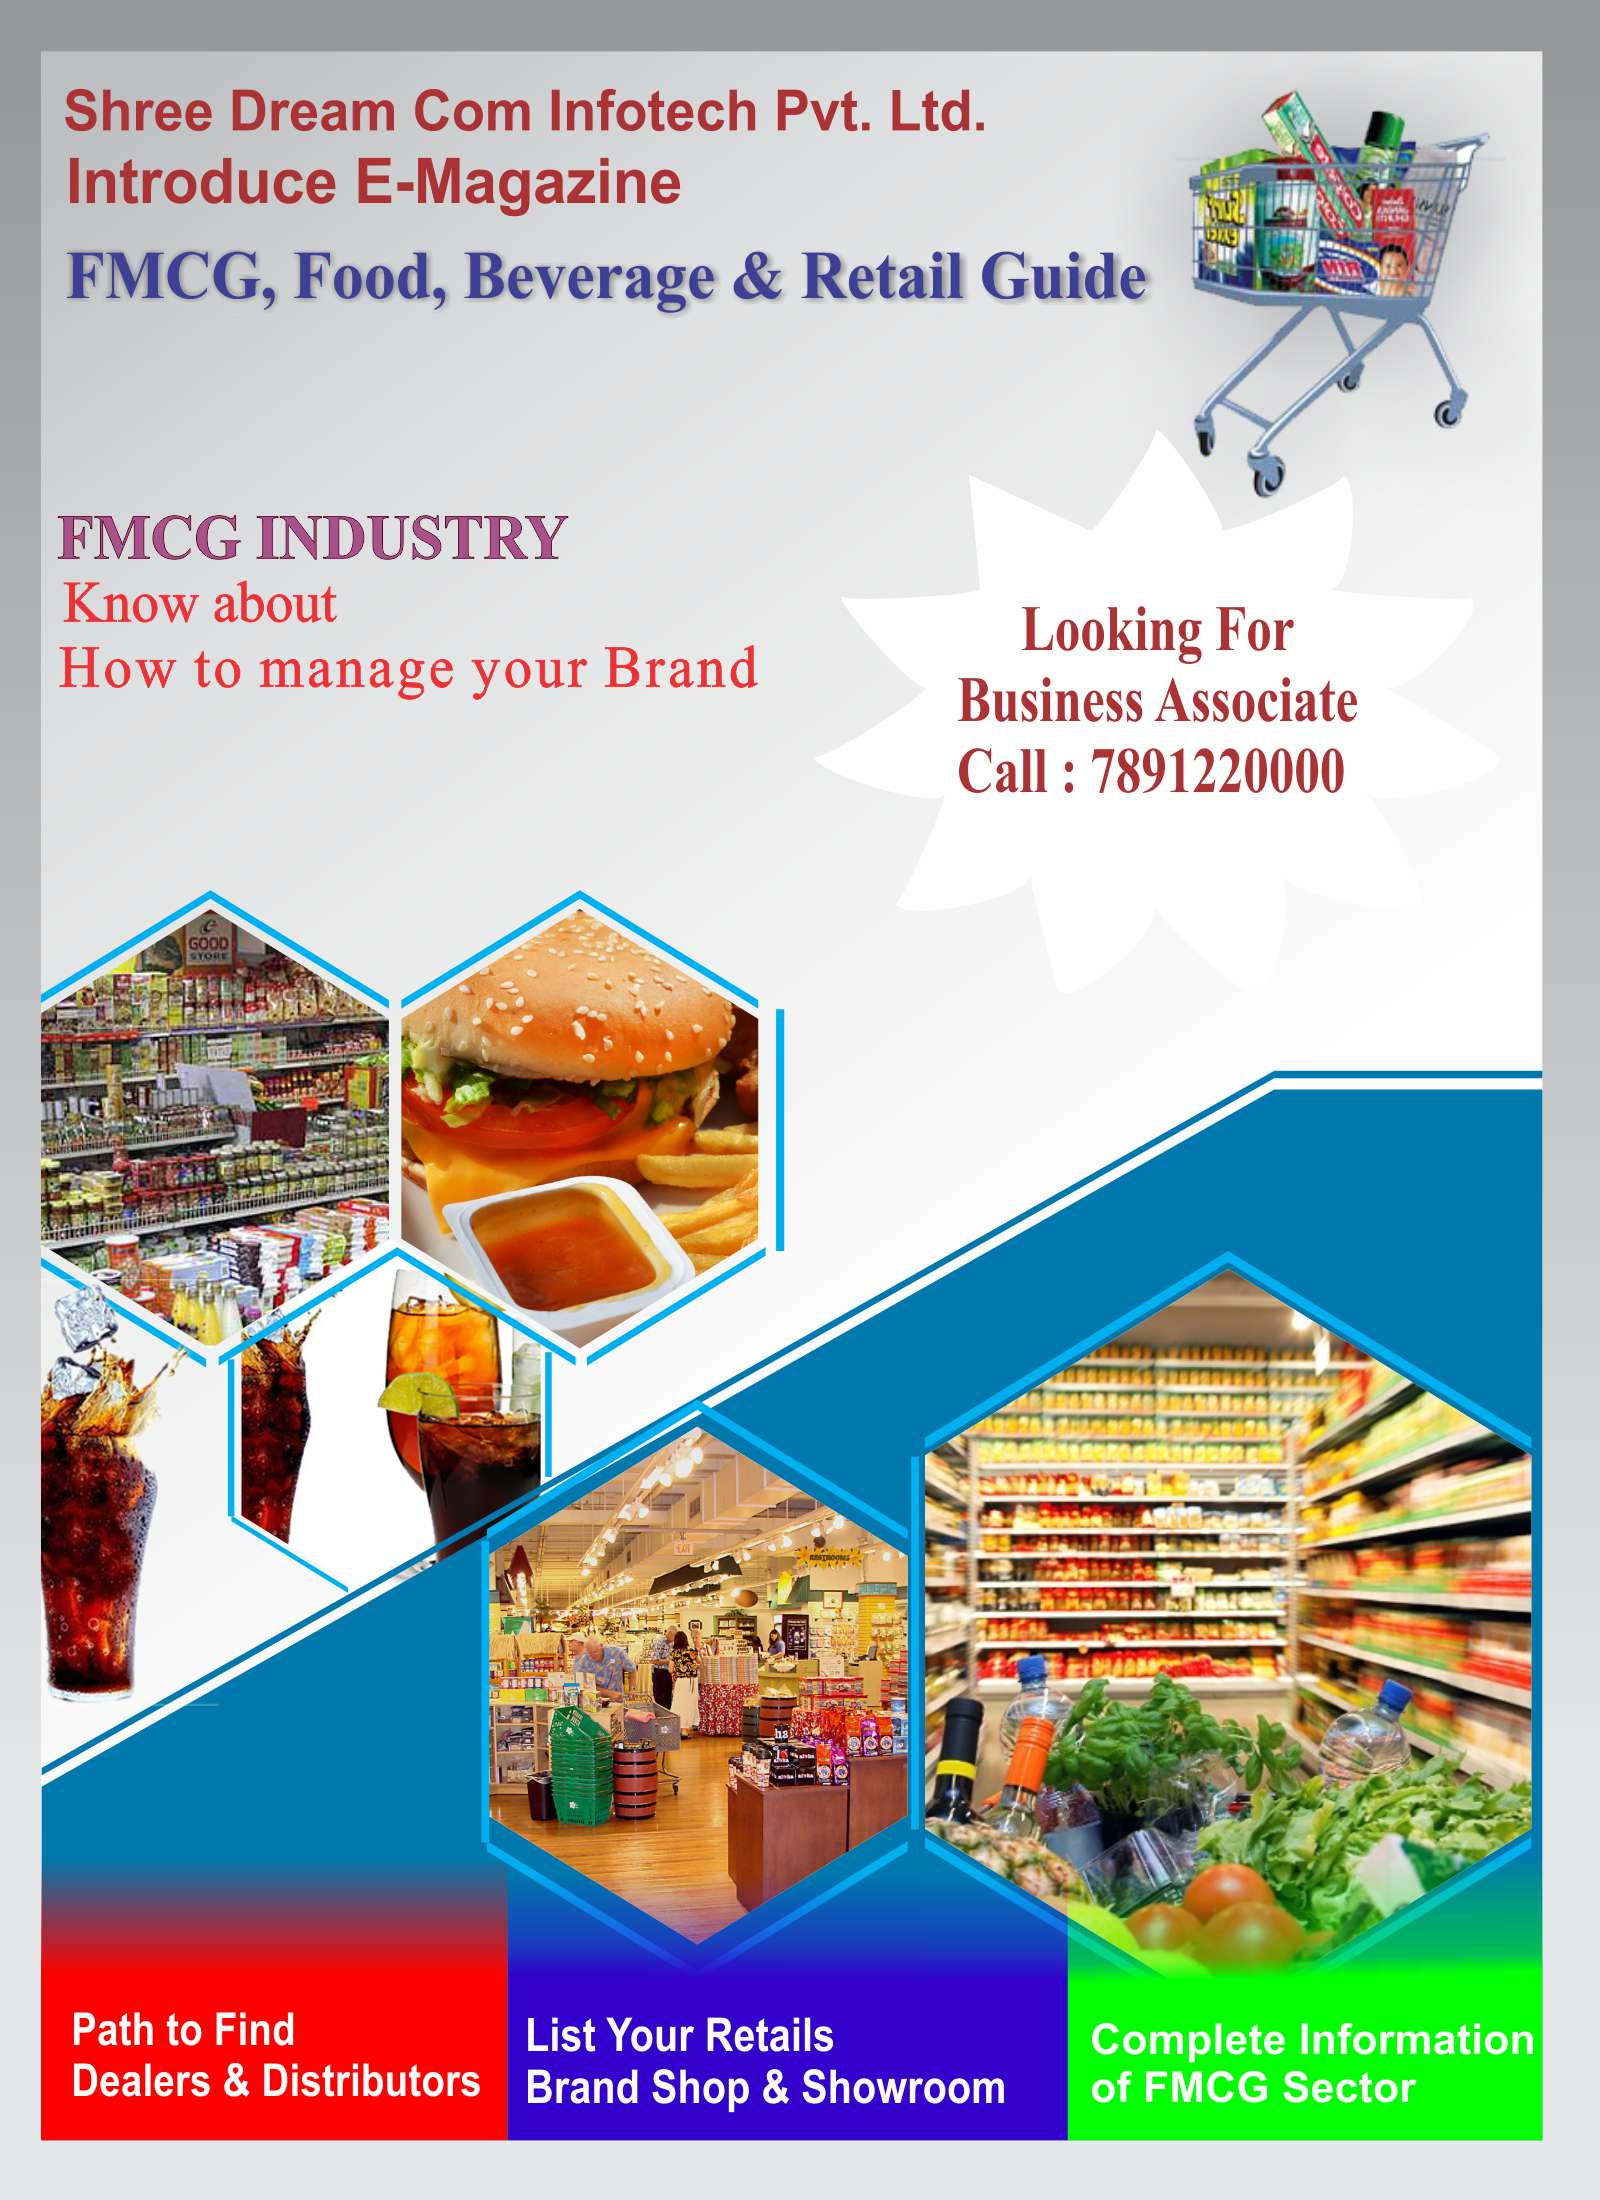 E-Magazine - Rajasthan FMCG, Food, Beverage & Retail Guide - Online